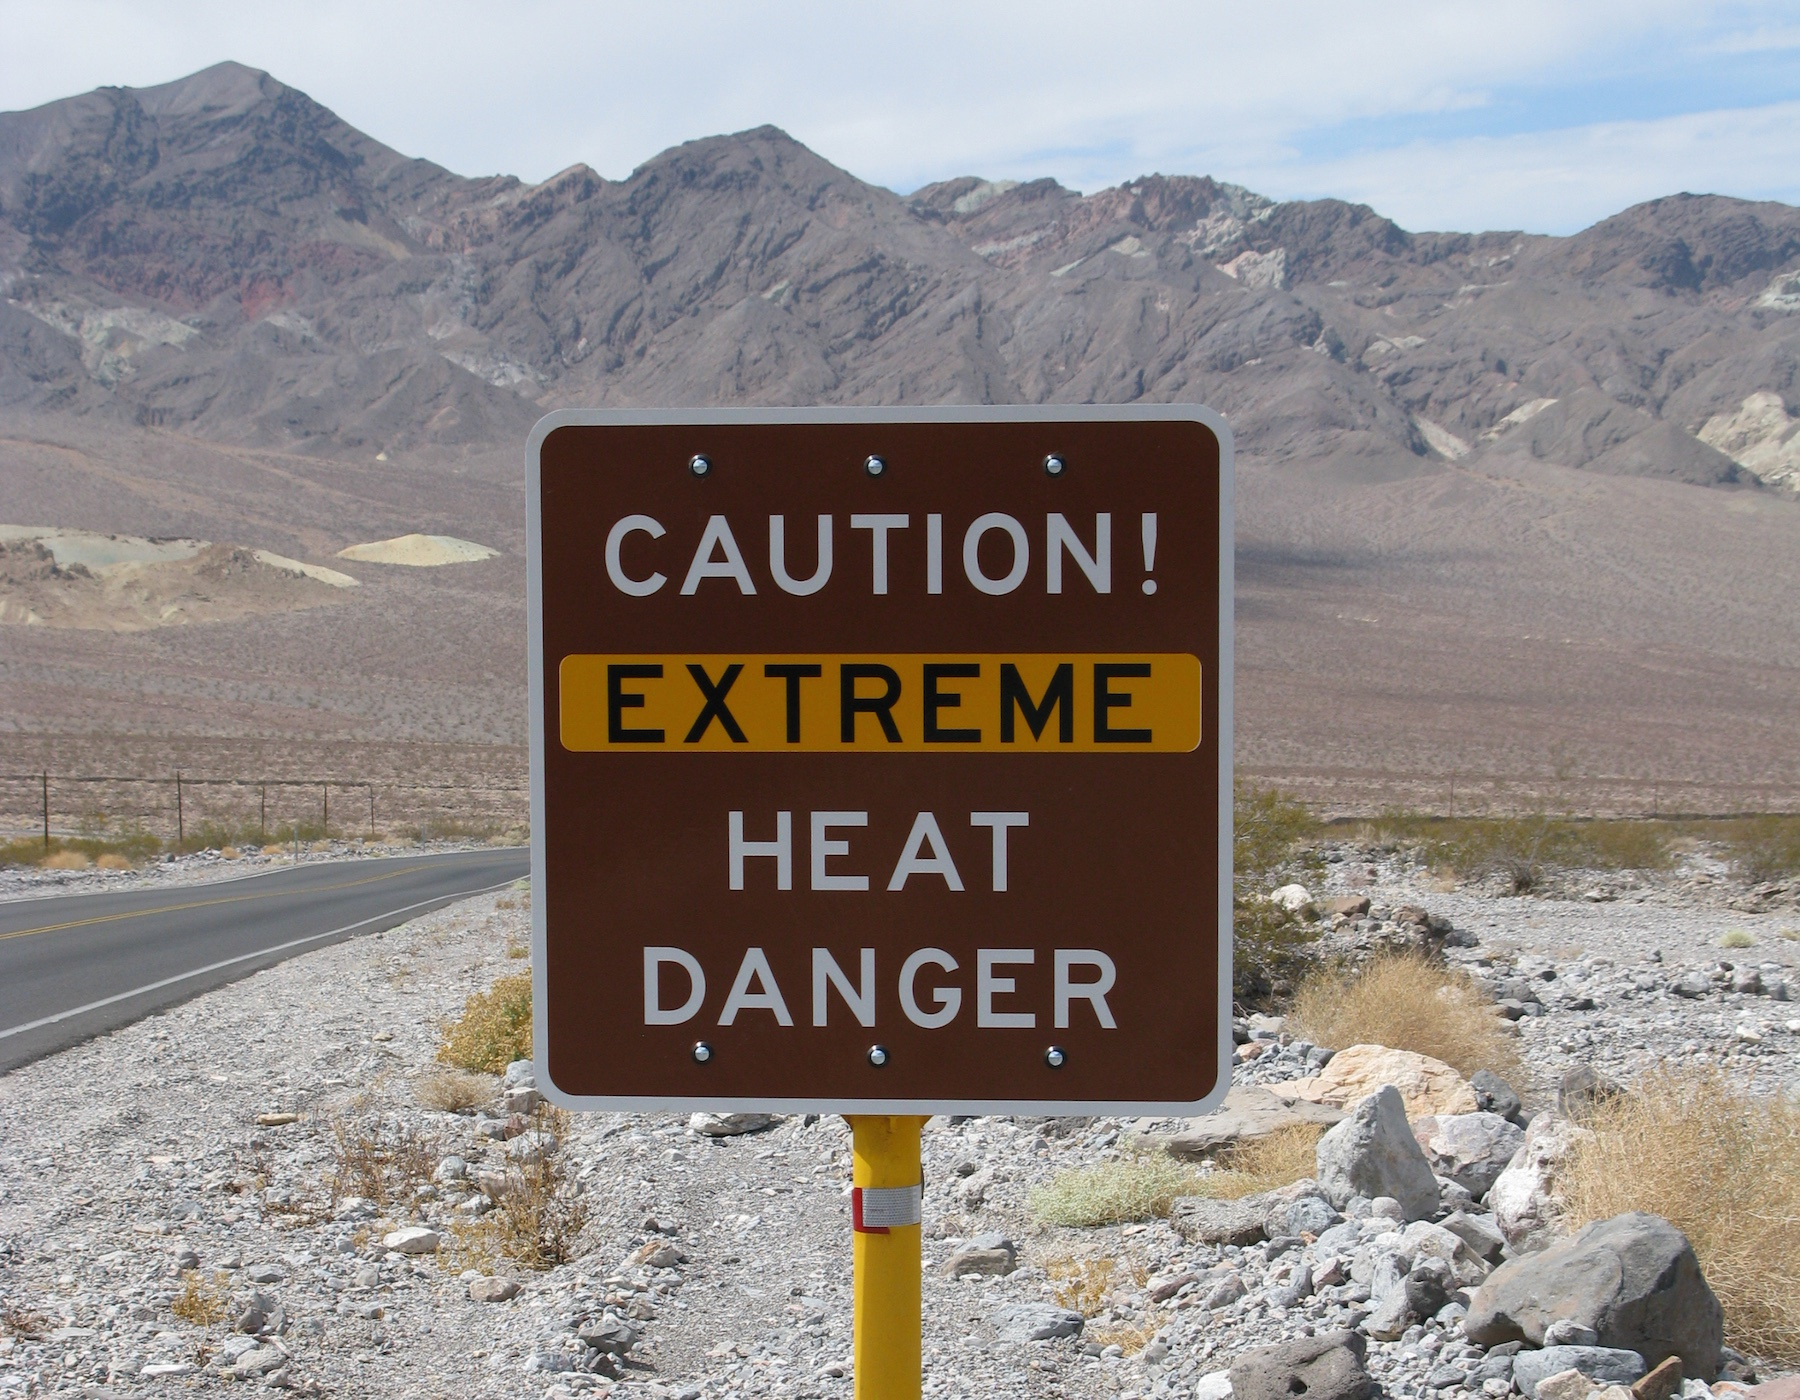 marco isler via flckr (2008) Death Valley, US - licence: CC BY-ND 2.0